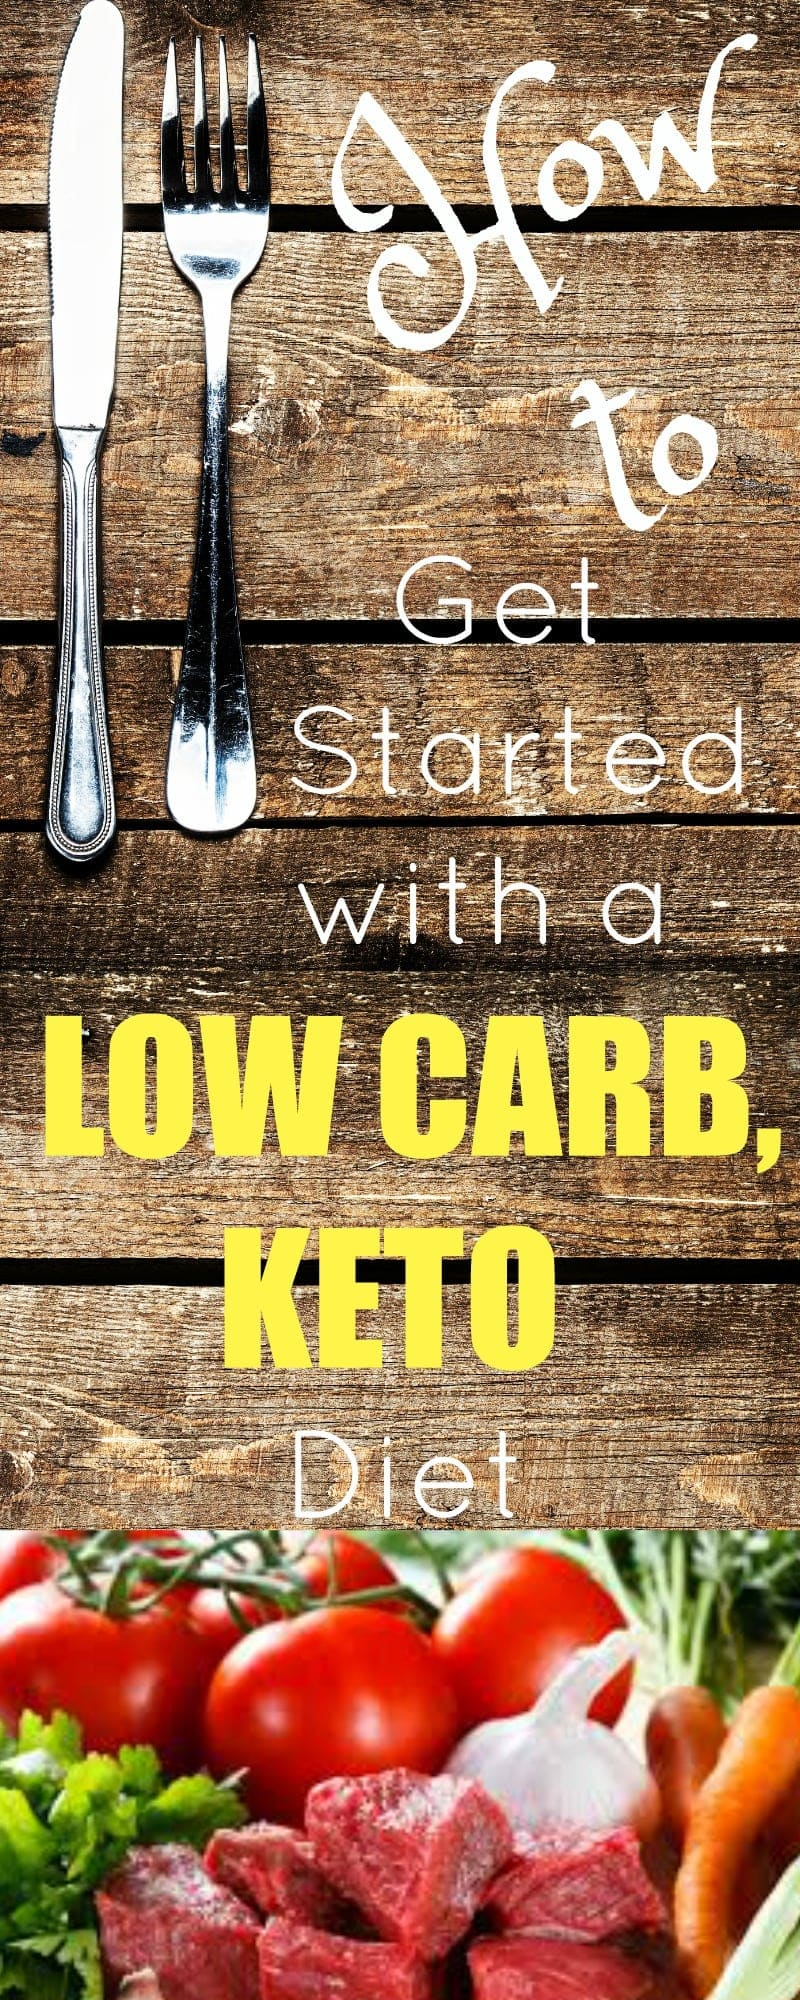 low carb resource guide how to get started with low carb keto